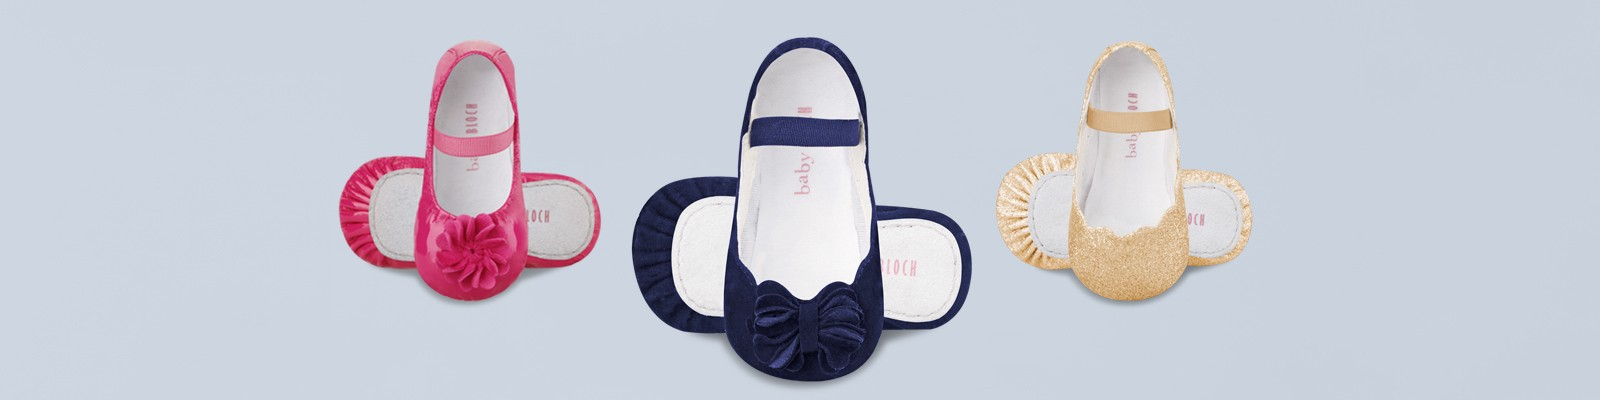 image - Baby Fashion Shoes